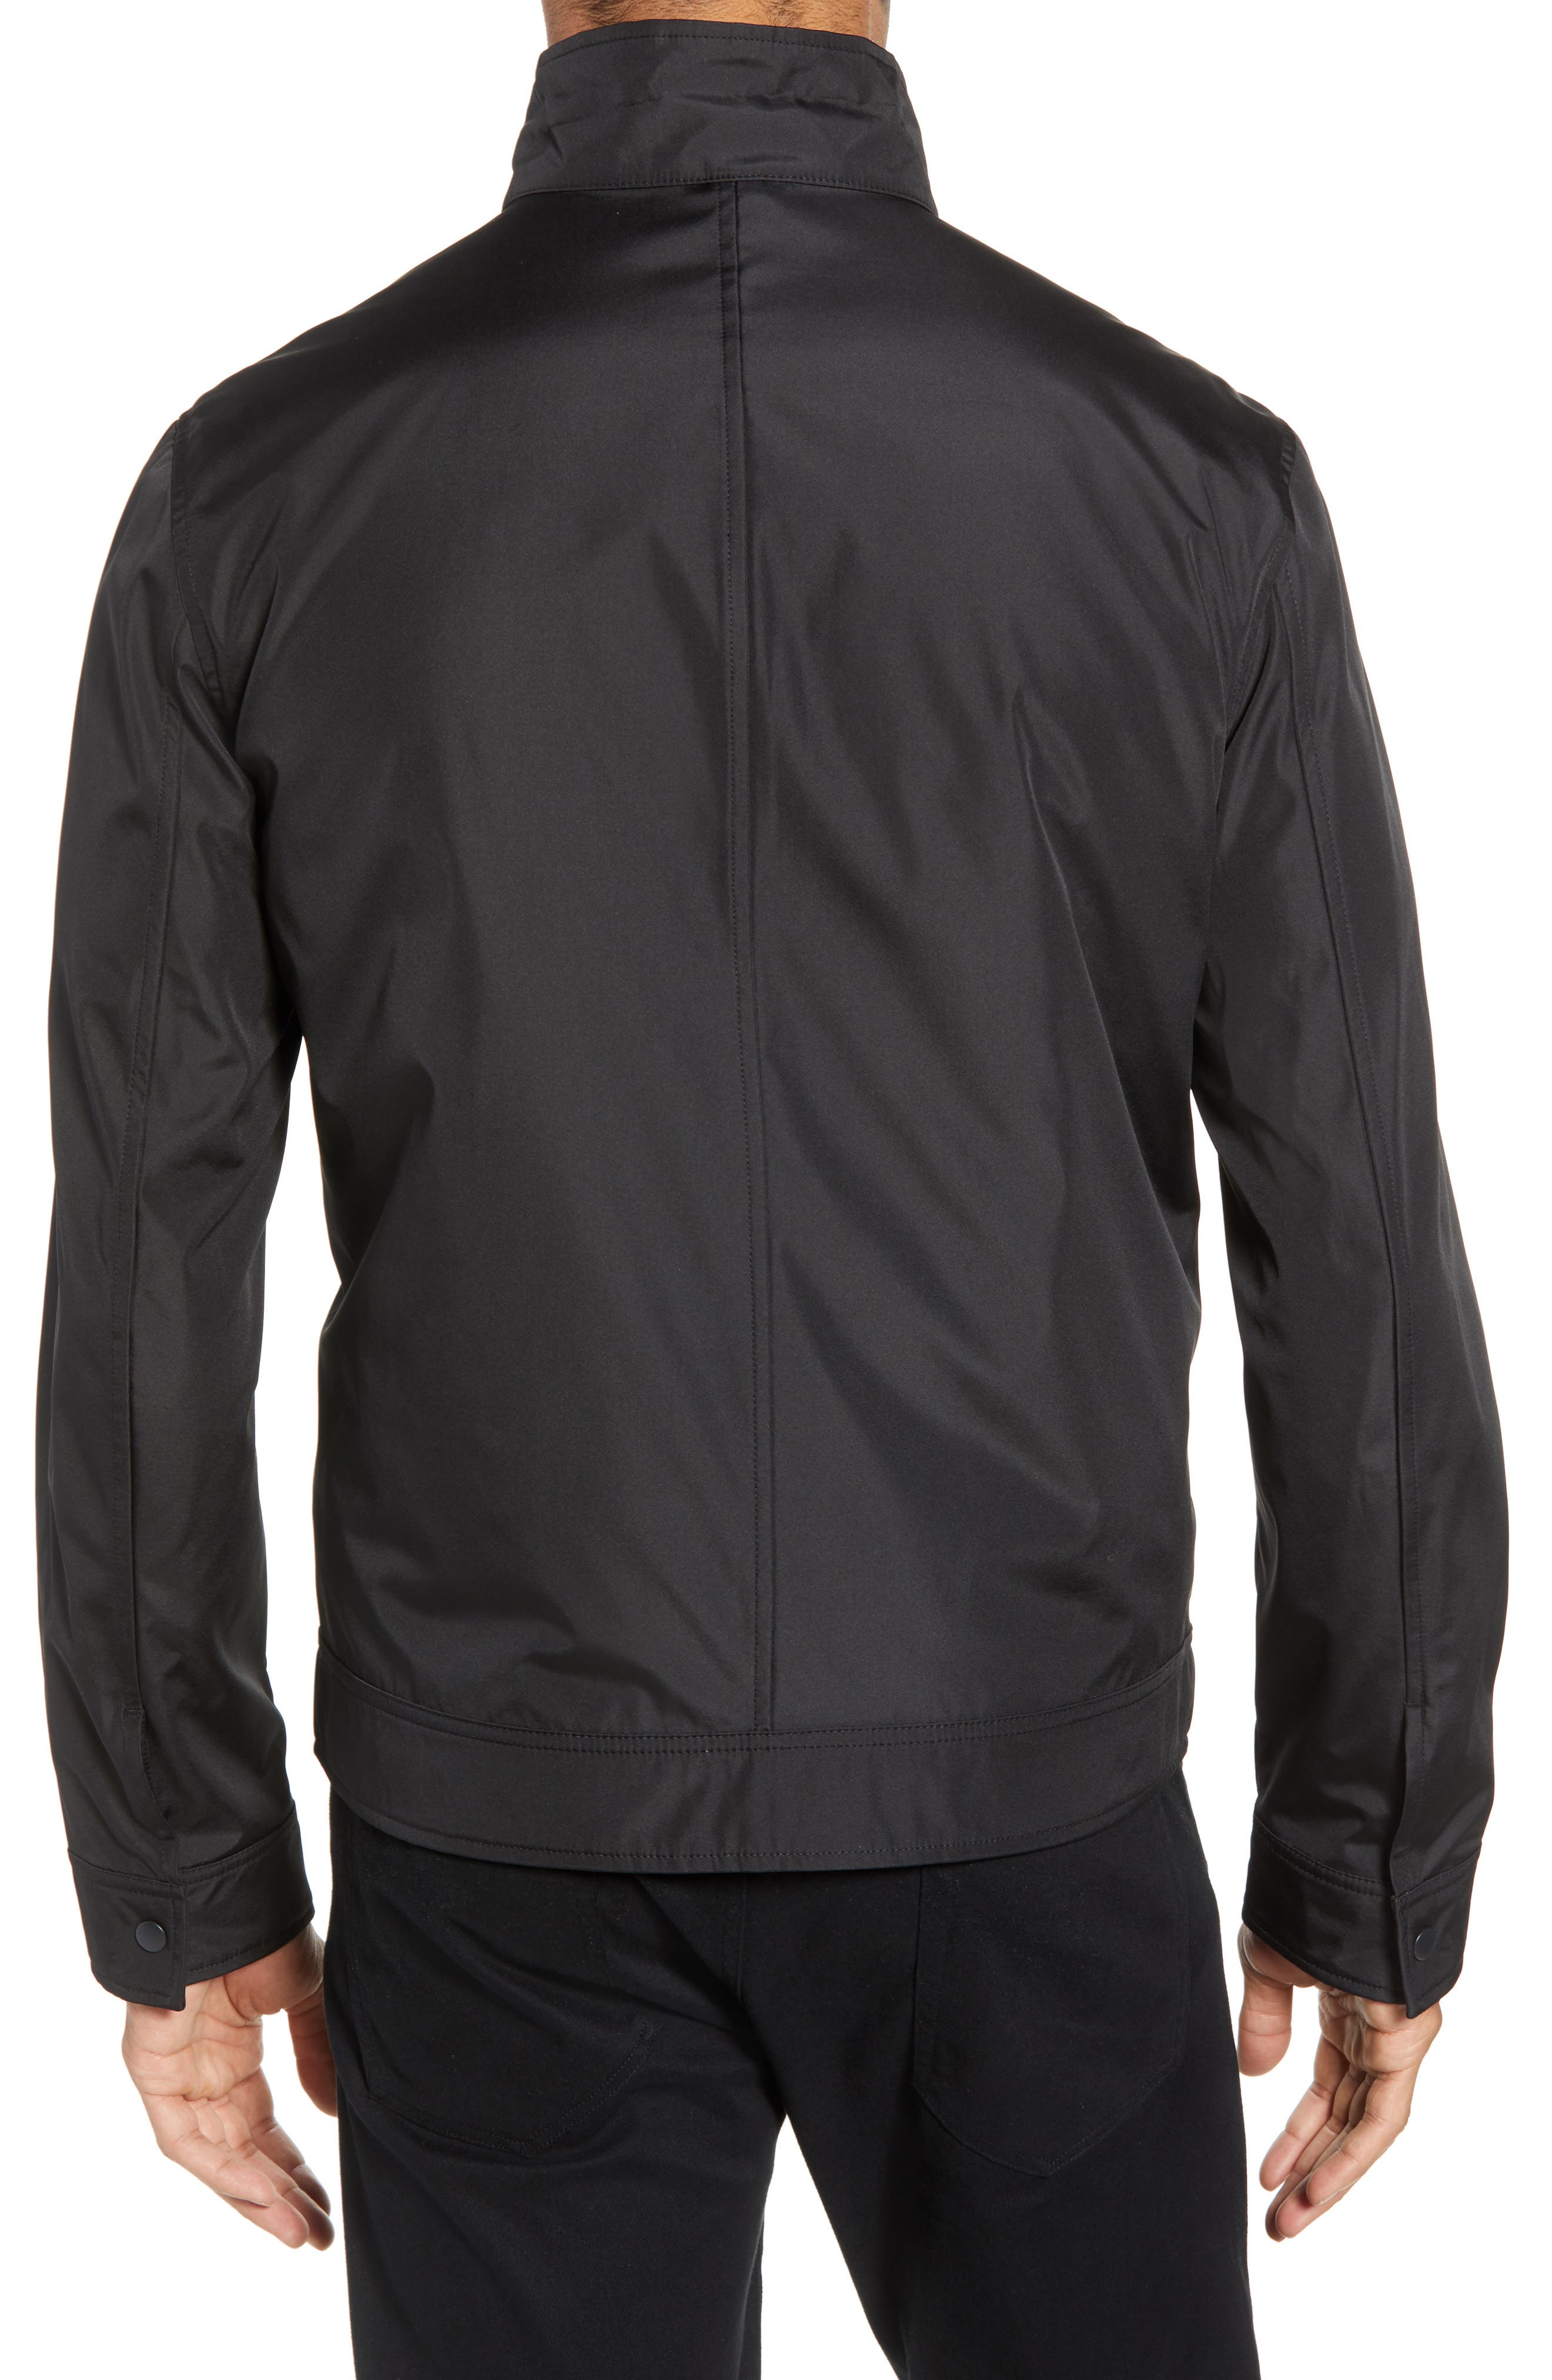 ZACHARY PRELL, Oxford 2-in-1 Jacket, Alternate thumbnail 2, color, BLACK